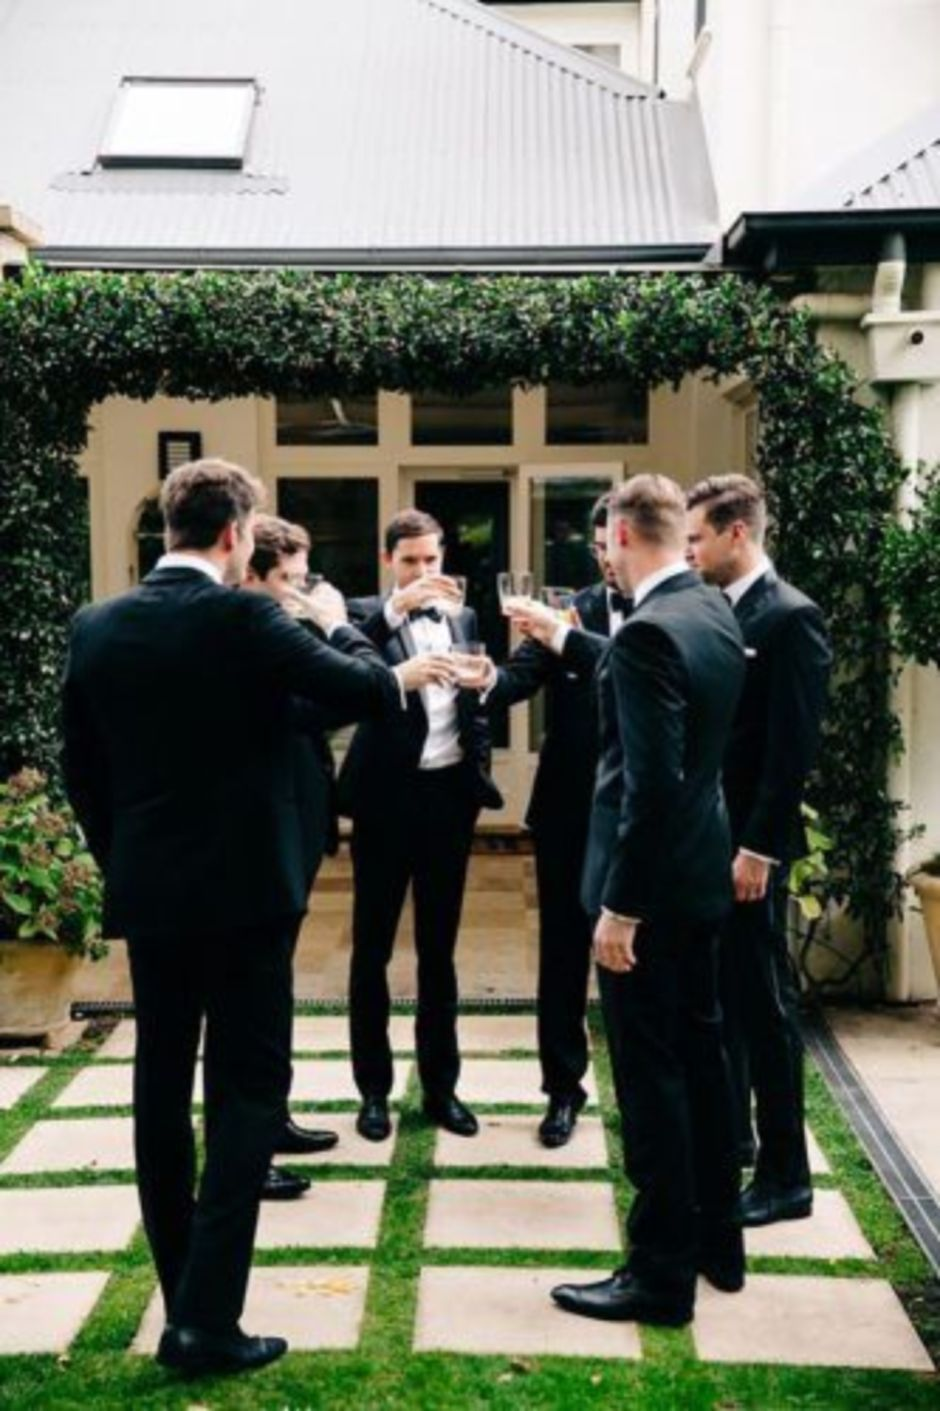 100+ Groomsmen Photos Poses Ideas You Can't Miss 14